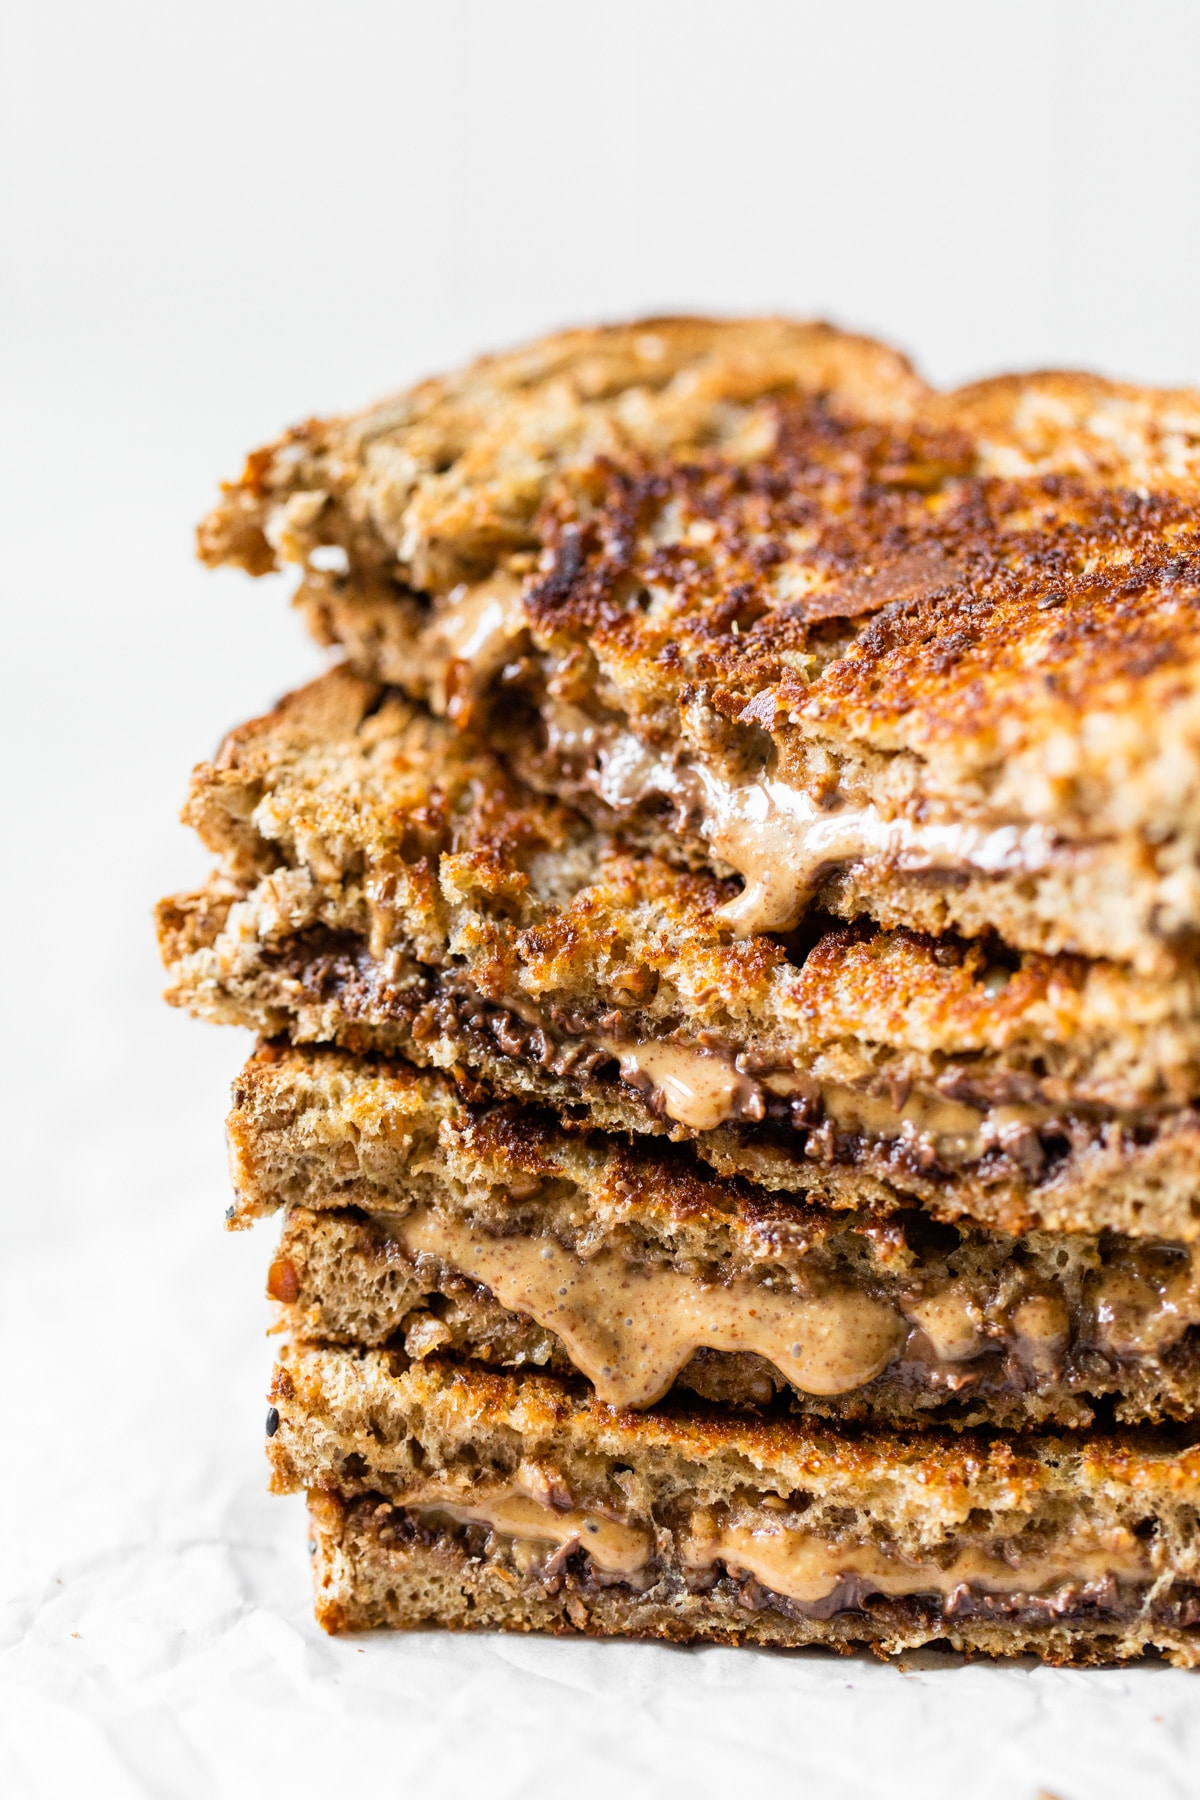 stacked sandwich with almond butter